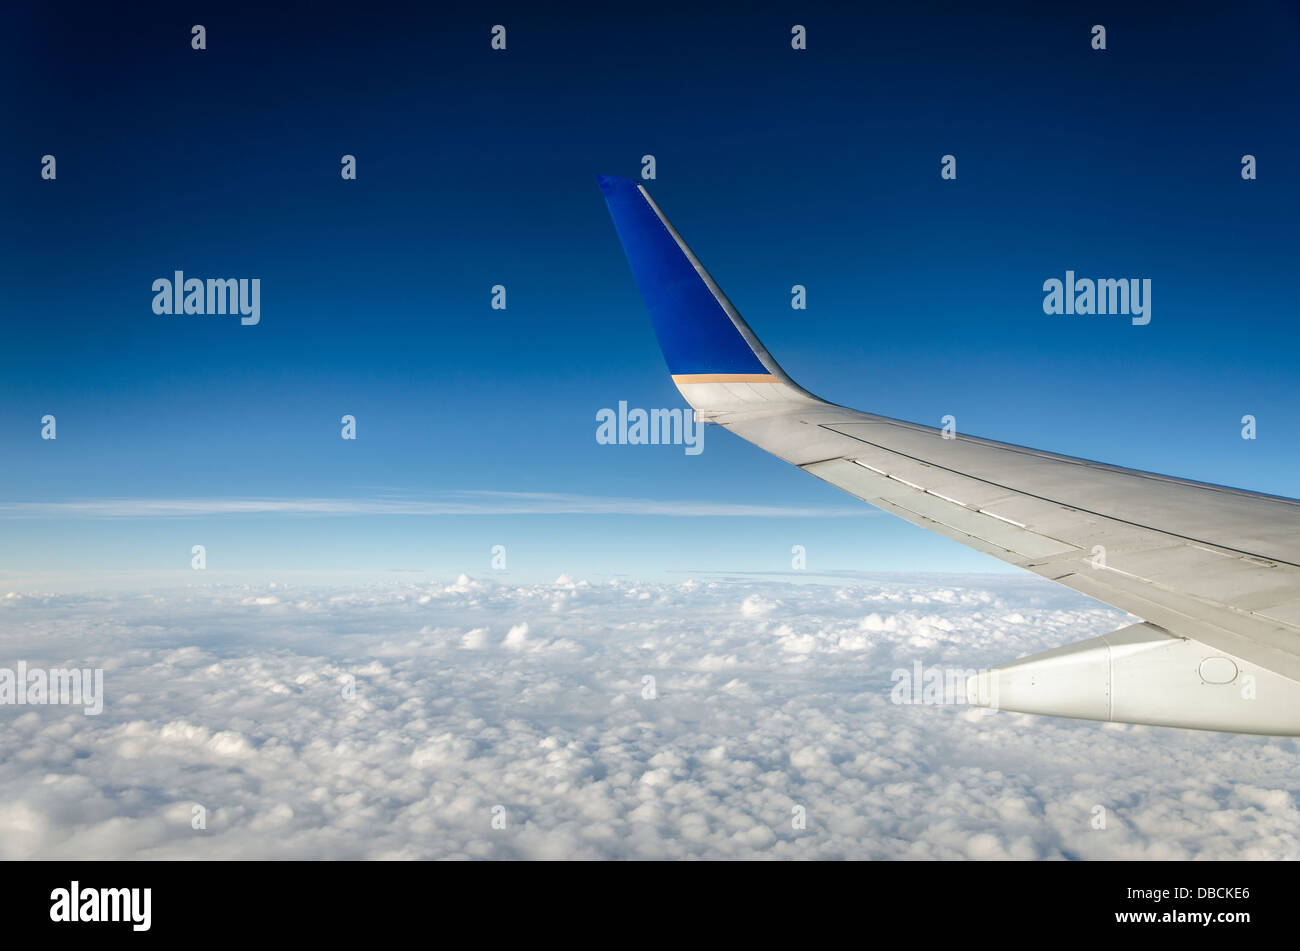 Wing of an airplane with beautiful white clouds and a deep blue sky - Stock Image